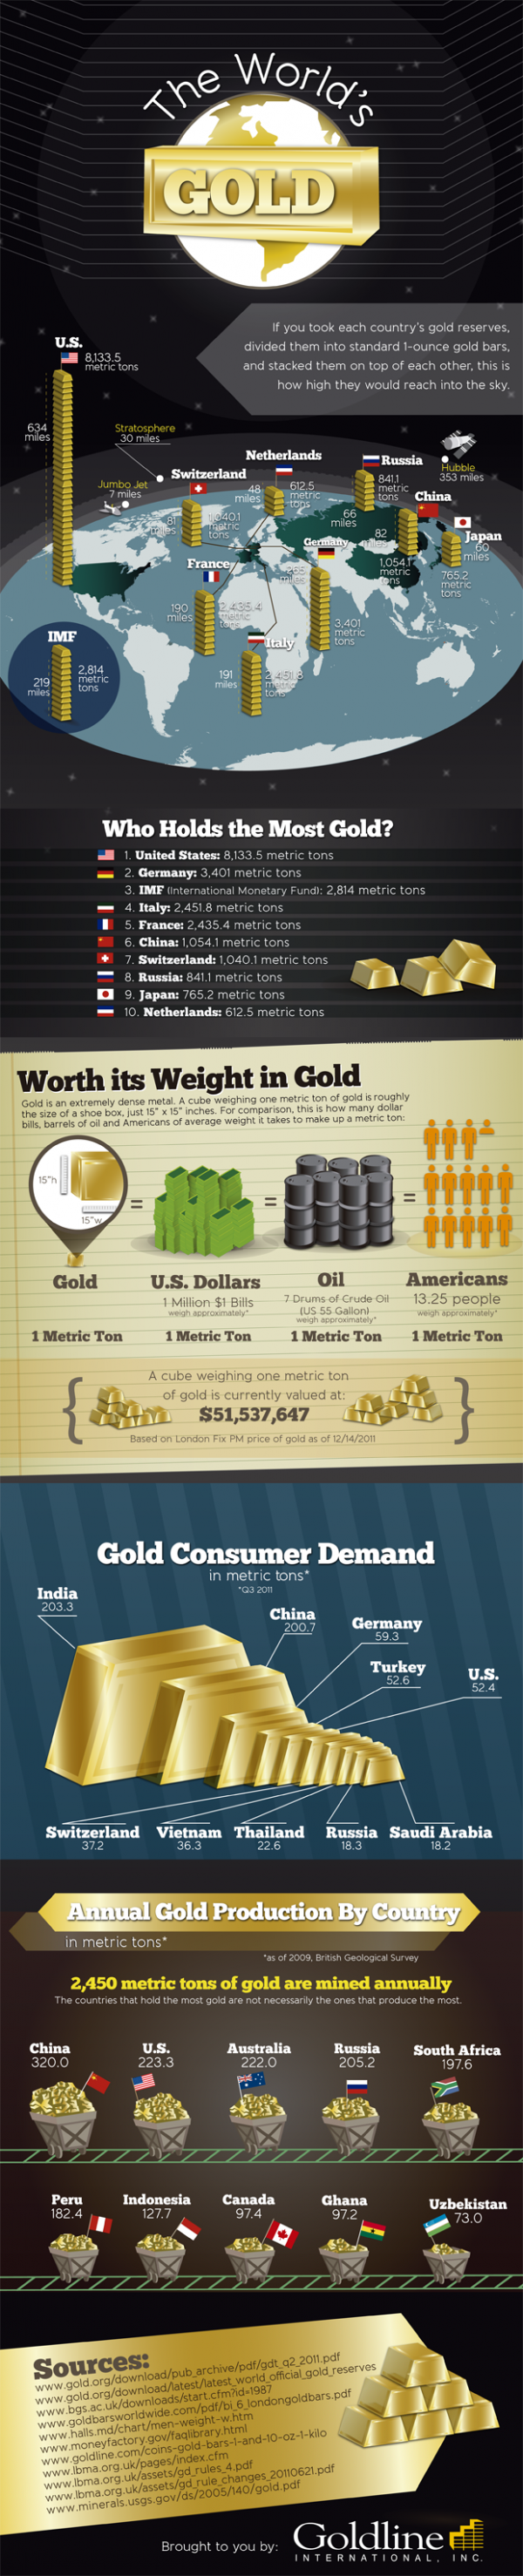 Infographic: The Power of Gold